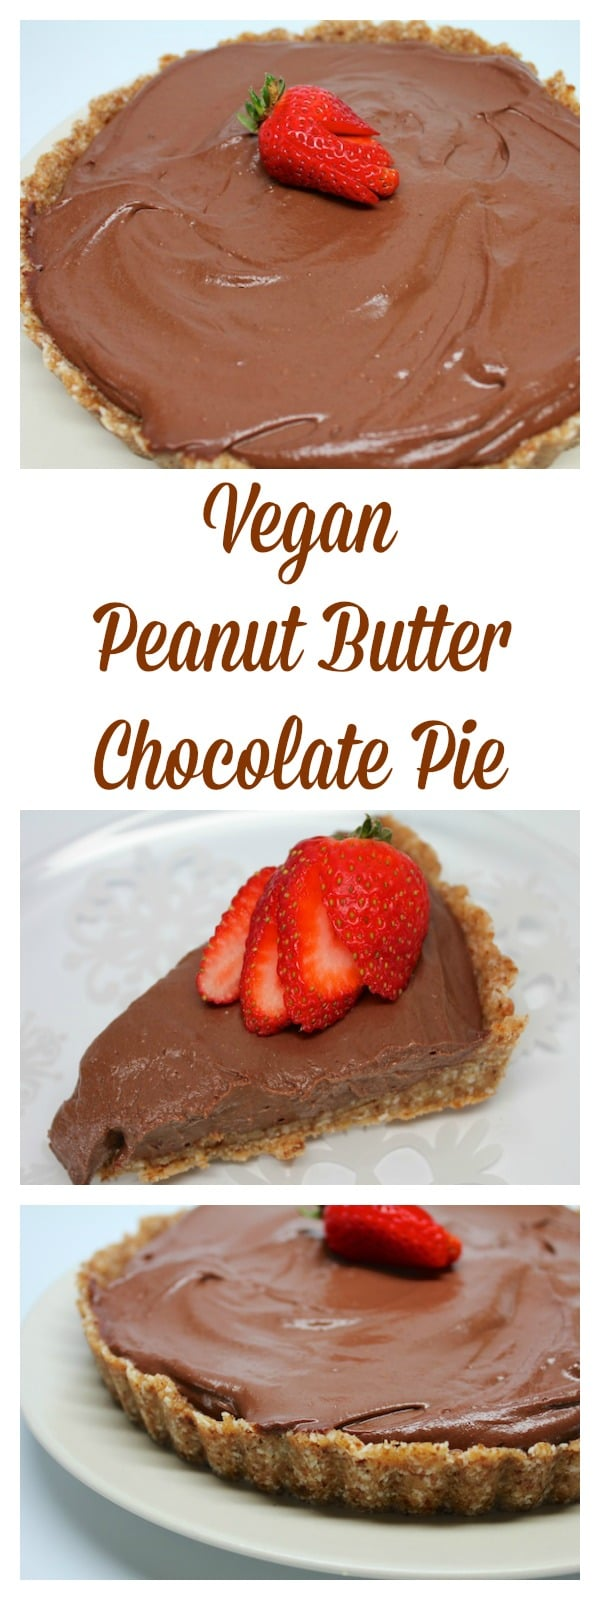 Vegan Peanut Butter Chocolate Pie made with no refined sugars.